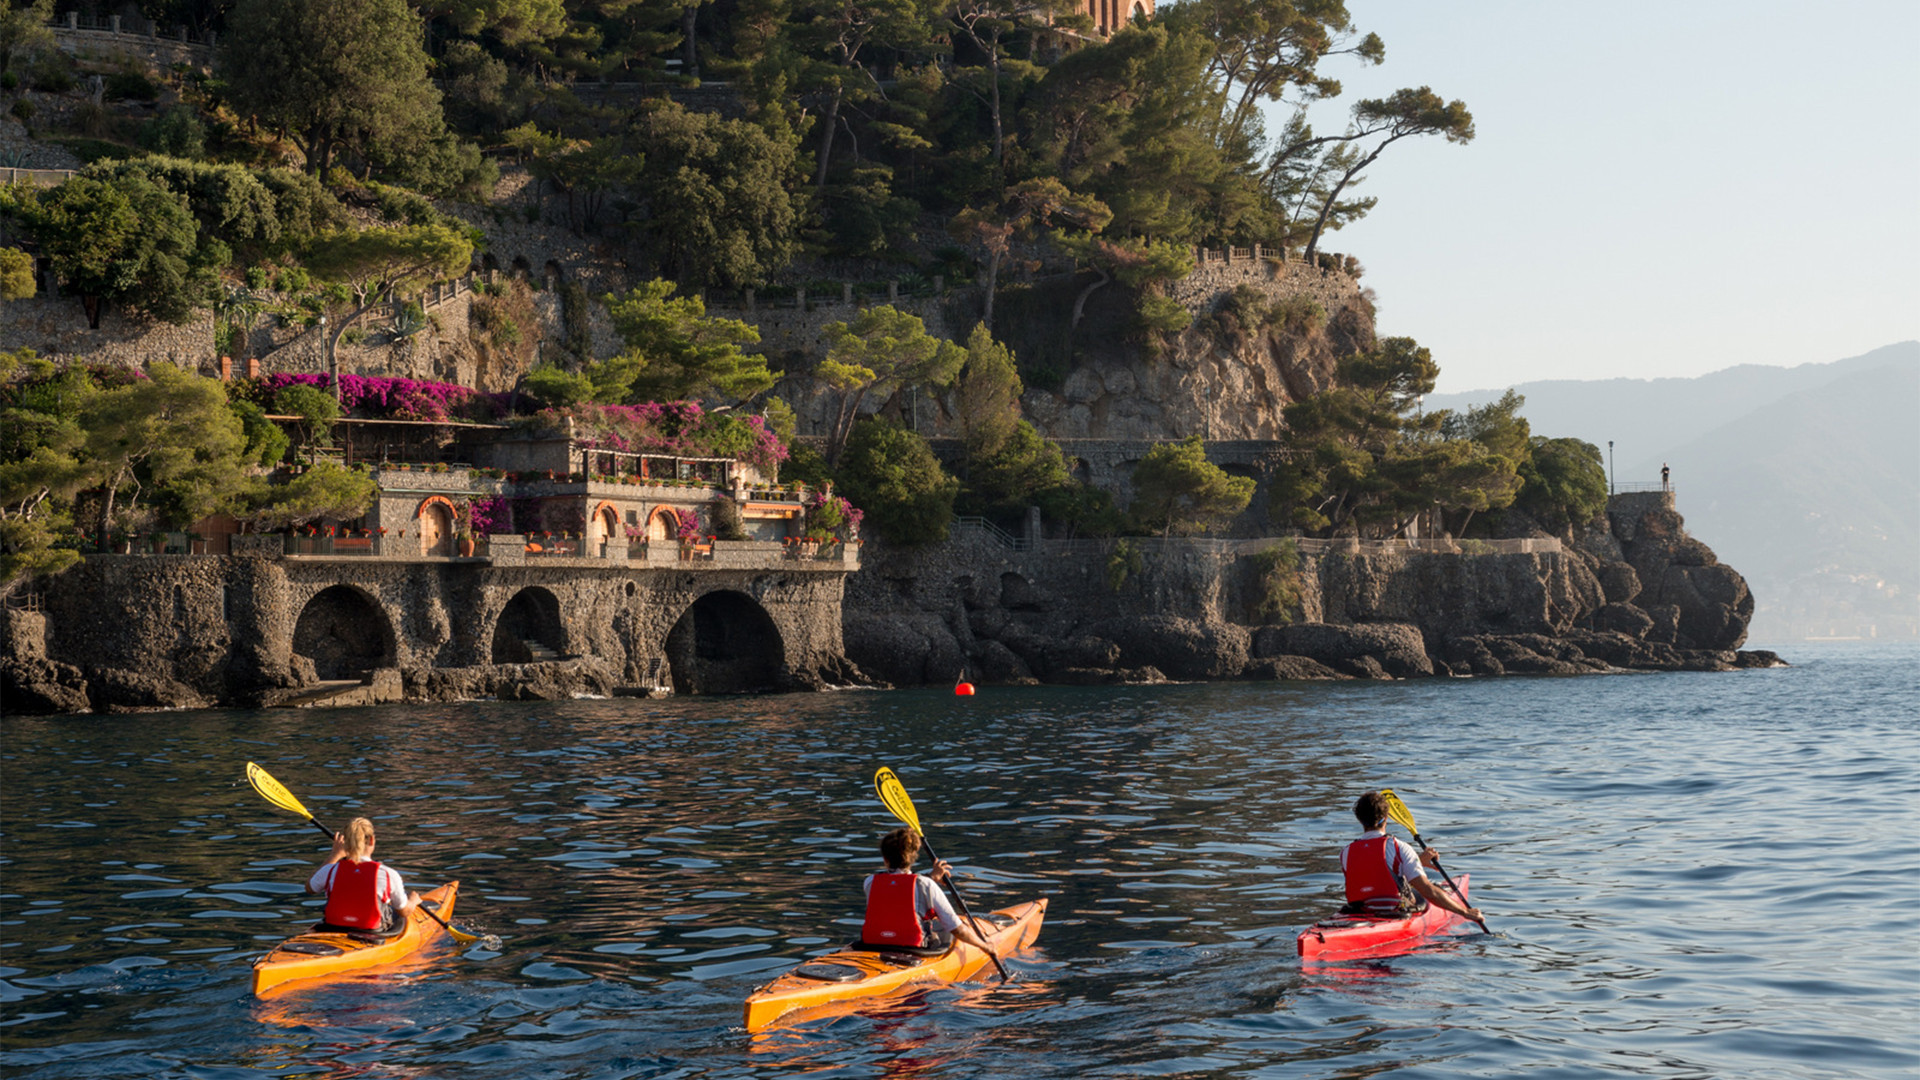 Kayaking in Portofino and Cinque Terre, Italy